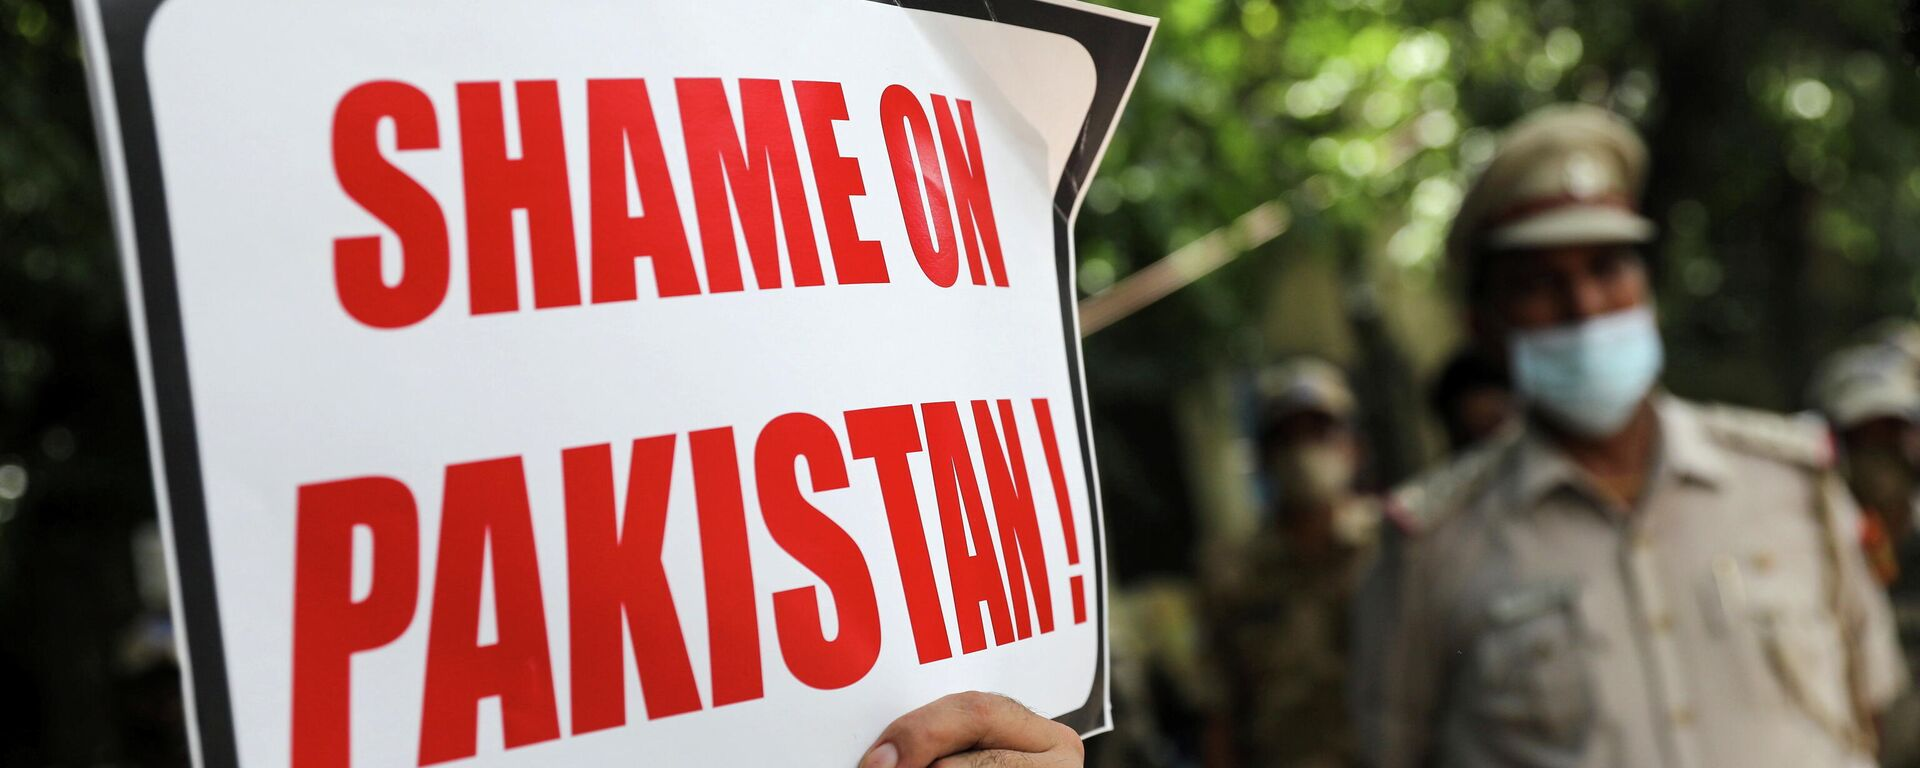 An Afghan national holds a sign during a protest against Pakistan and Taliban near a police station in New Delhi, India, September 14, 2021. - Sputnik International, 1920, 14.09.2021